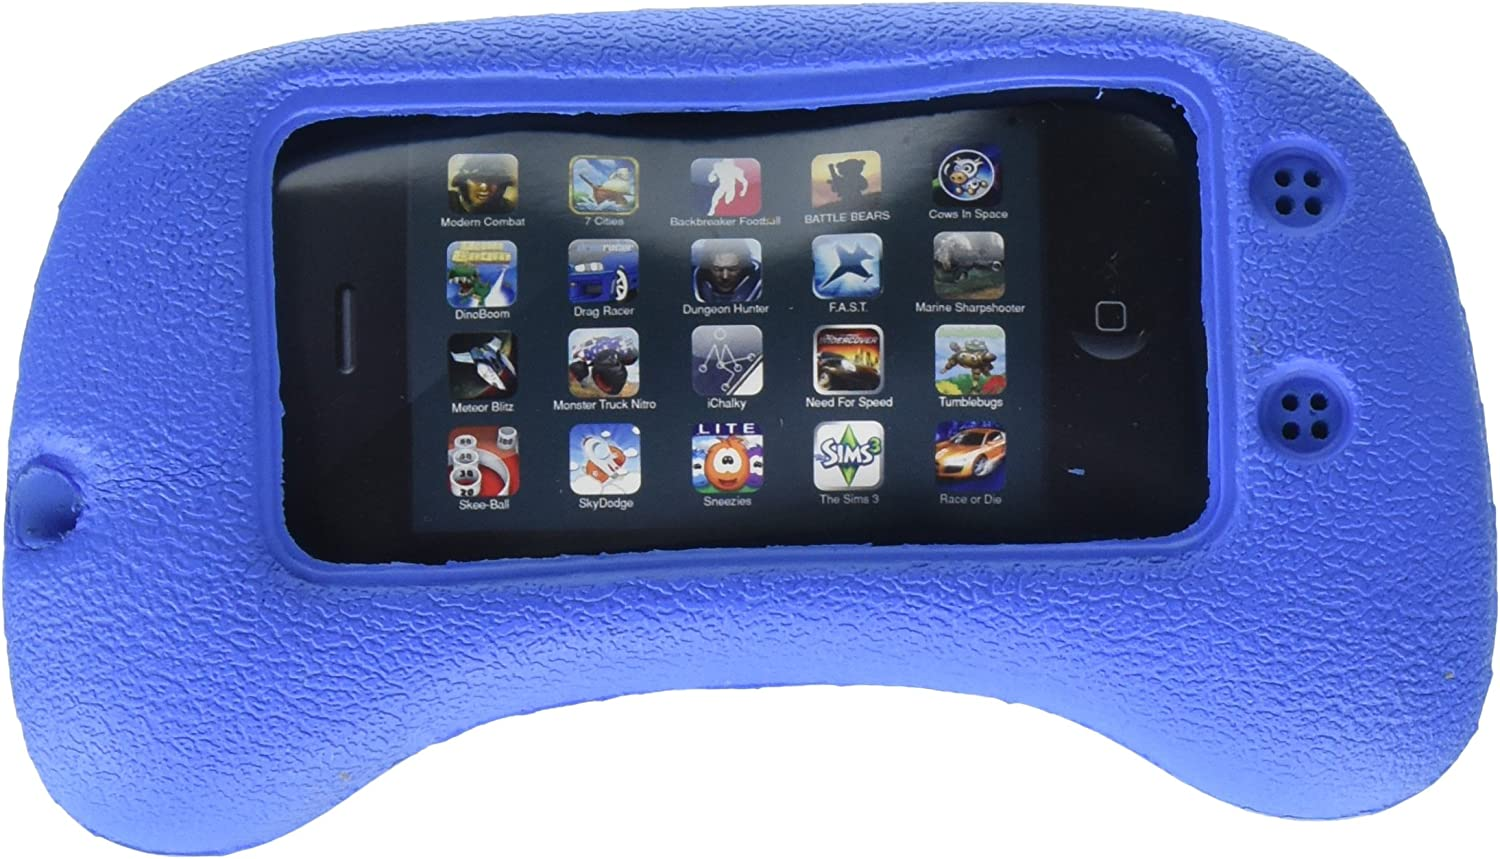 GRANDTEC SQZ-1000i Squeez Dock for iPod Touch (Blue)